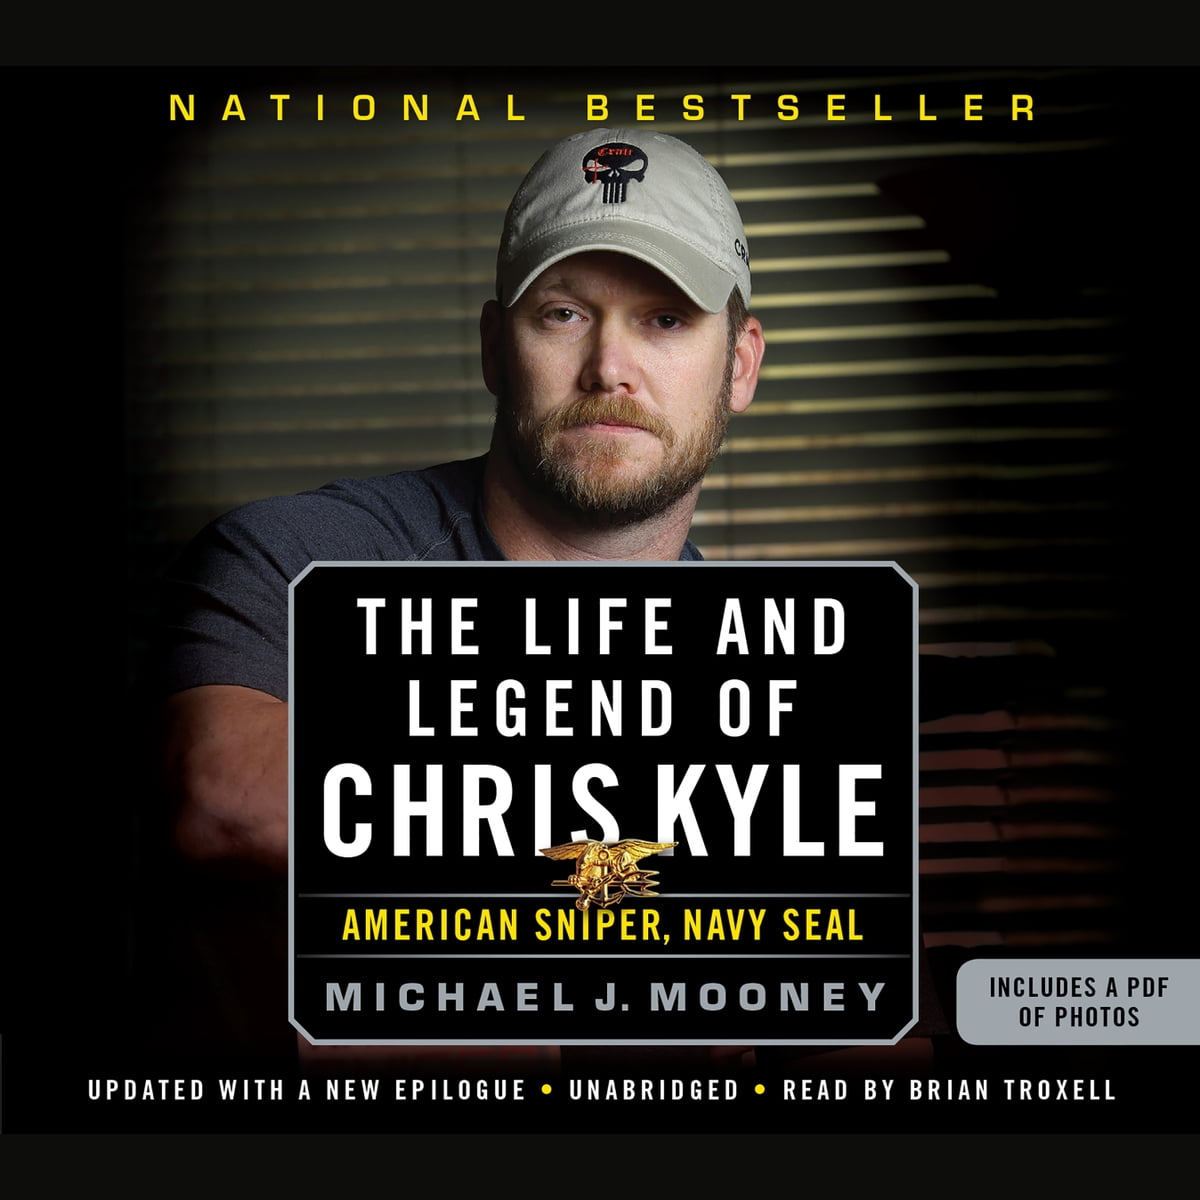 The Life and Legend of Chris Kyle: American Sniper, Navy SEAL audiobook by  Michael J  Mooney - Rakuten Kobo